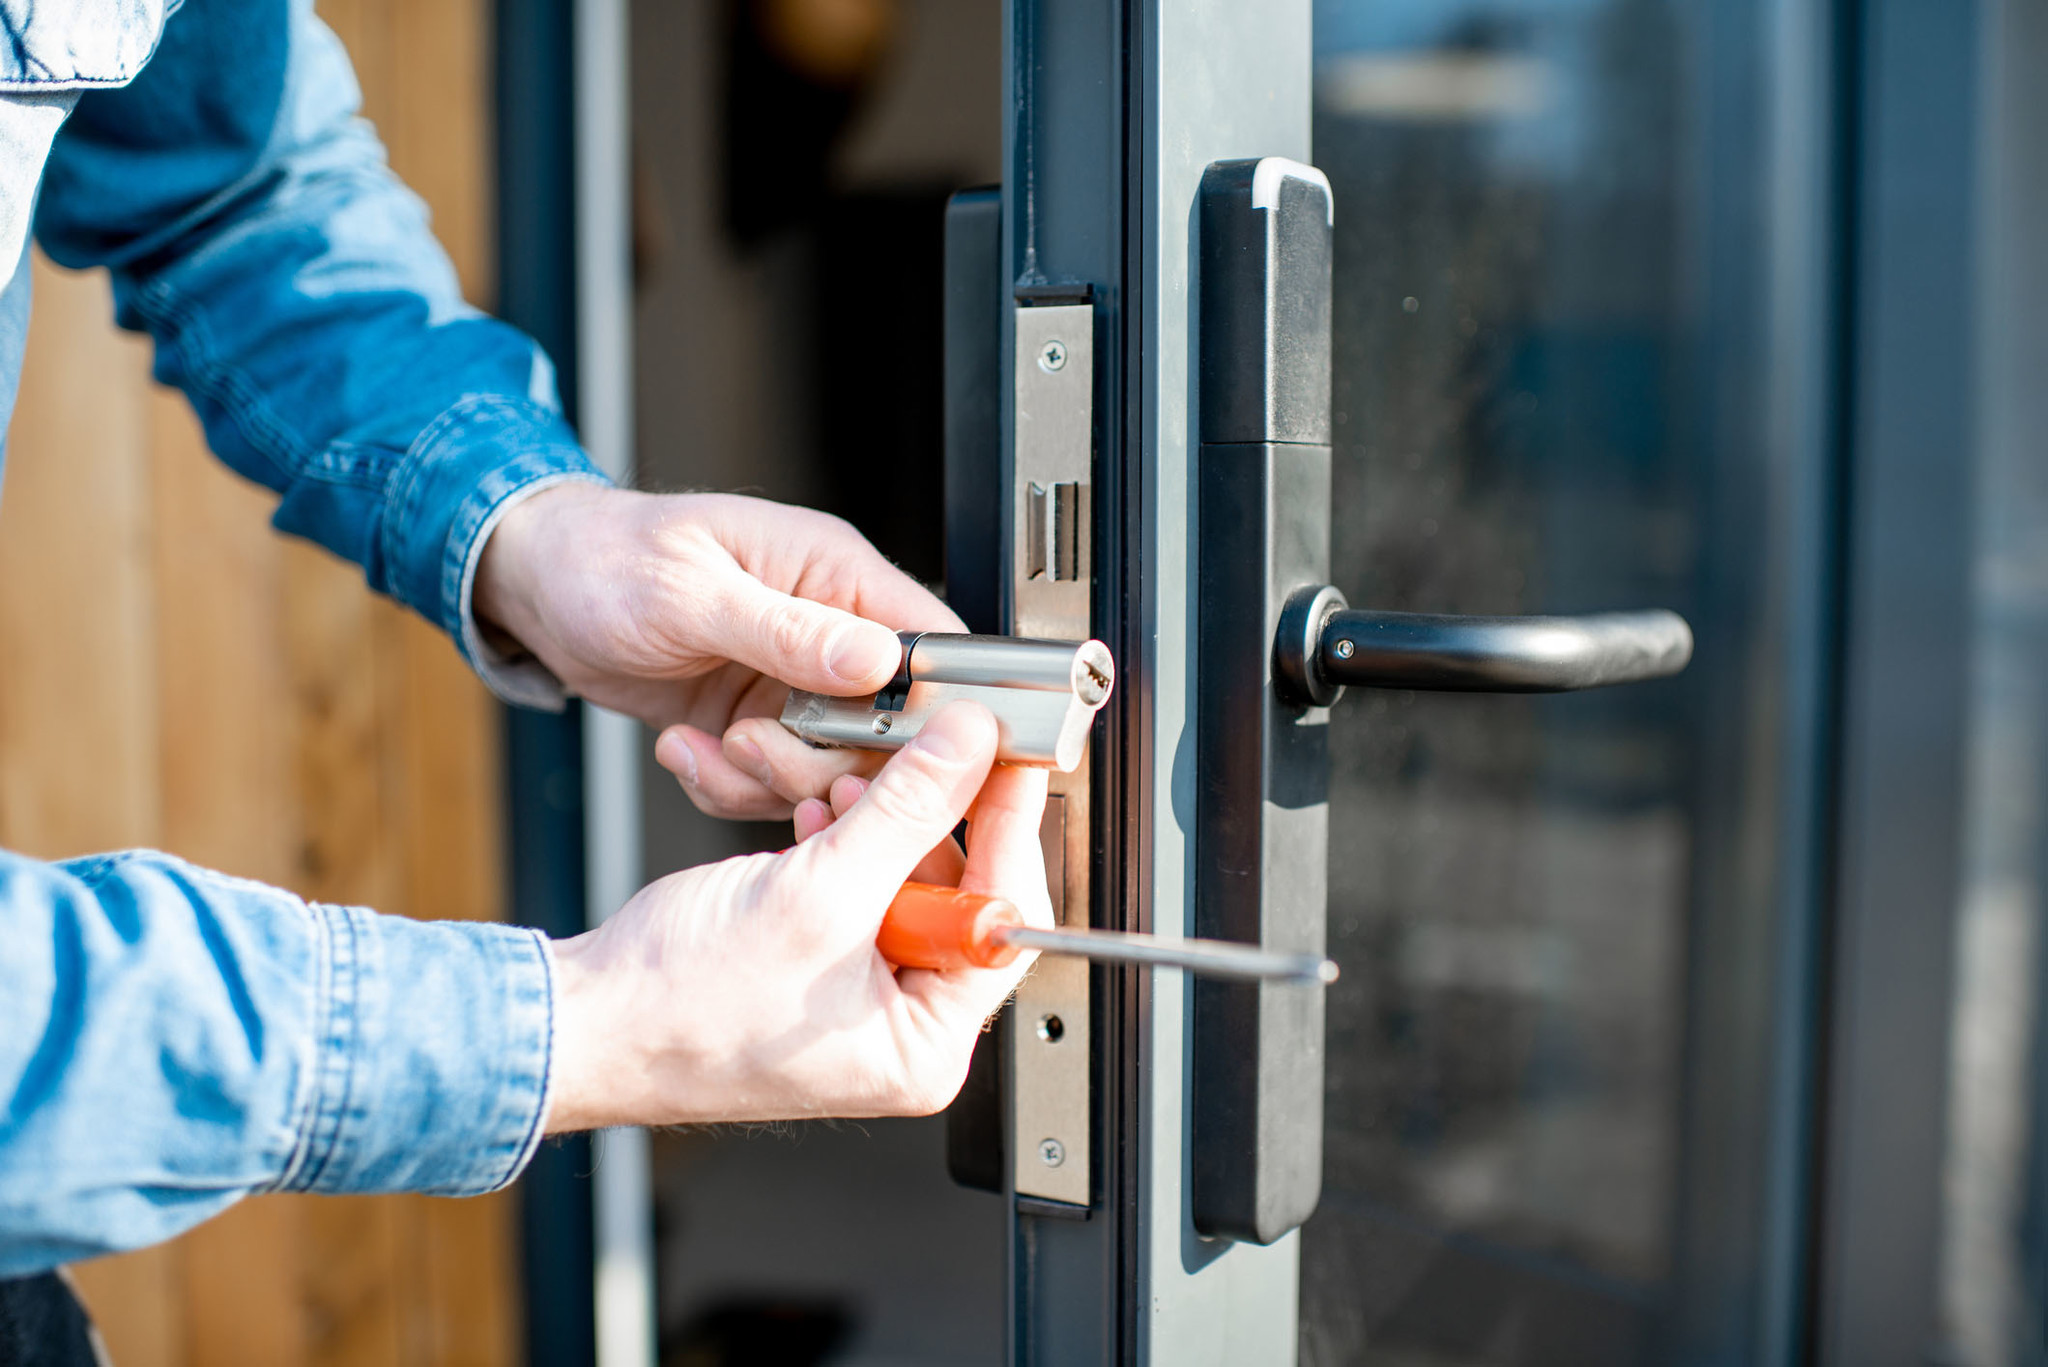 Locksmith Varies – Do You Need Auto Locksmiths, Safe Specialist, Or Commercial Lock Guy?